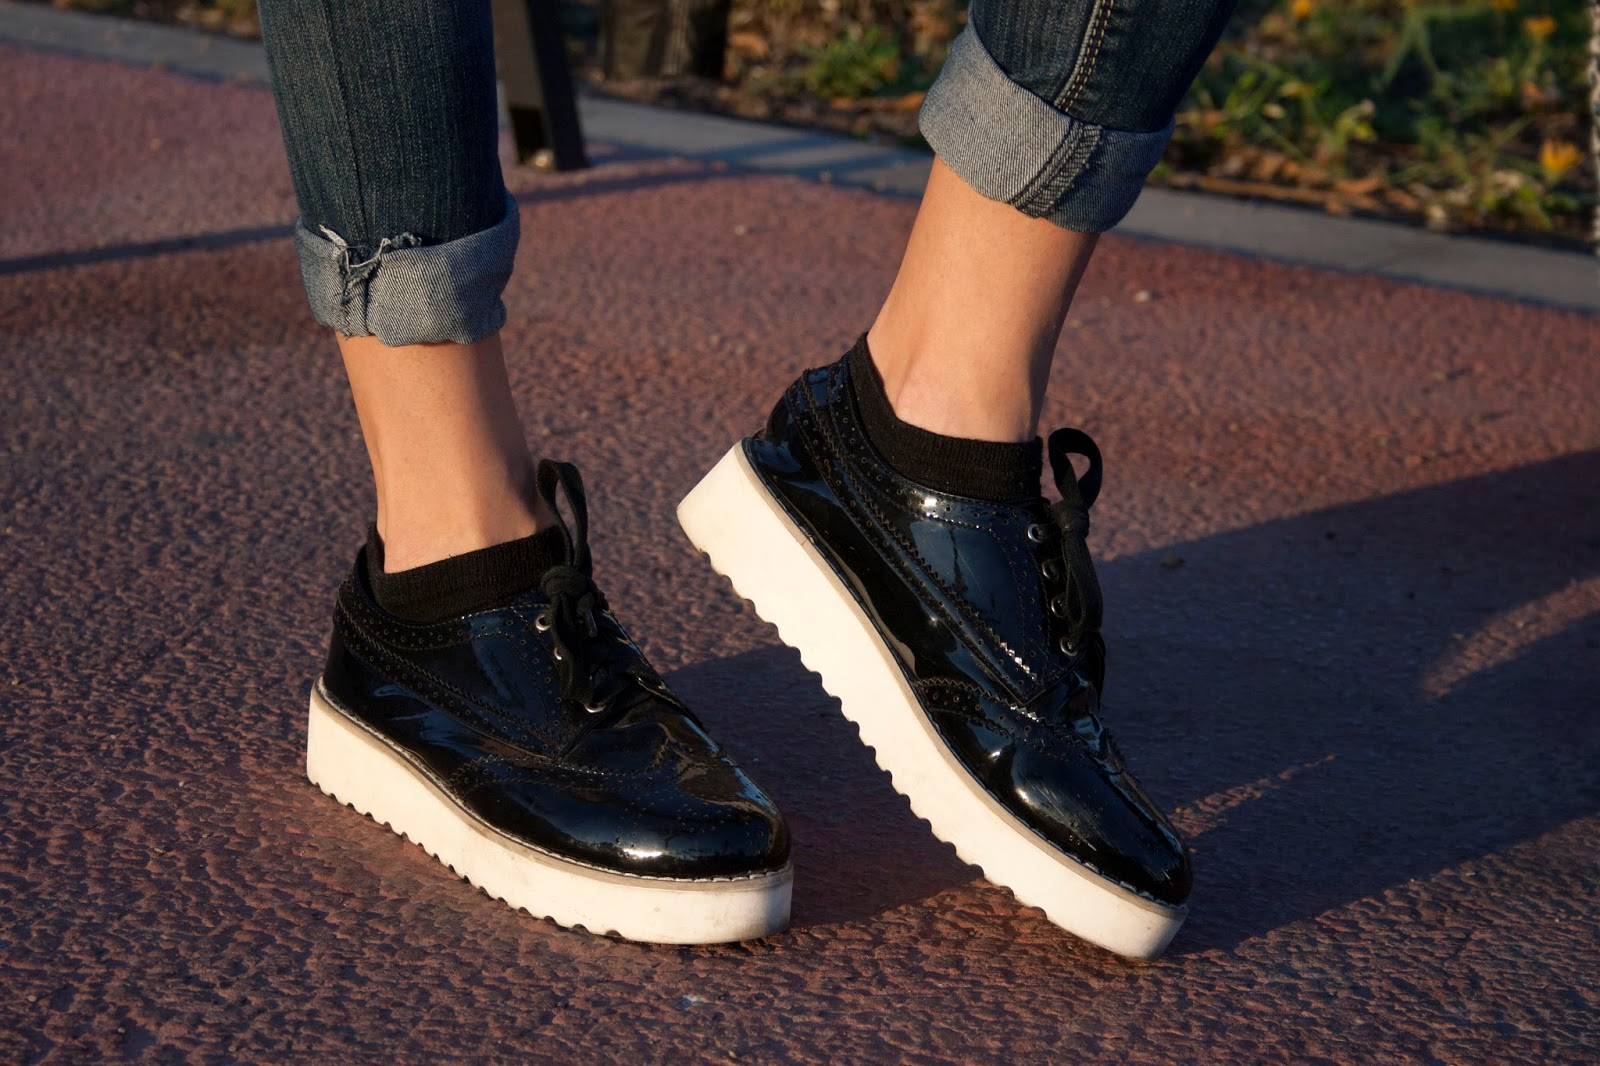 grunge-platform-shoes-clothing